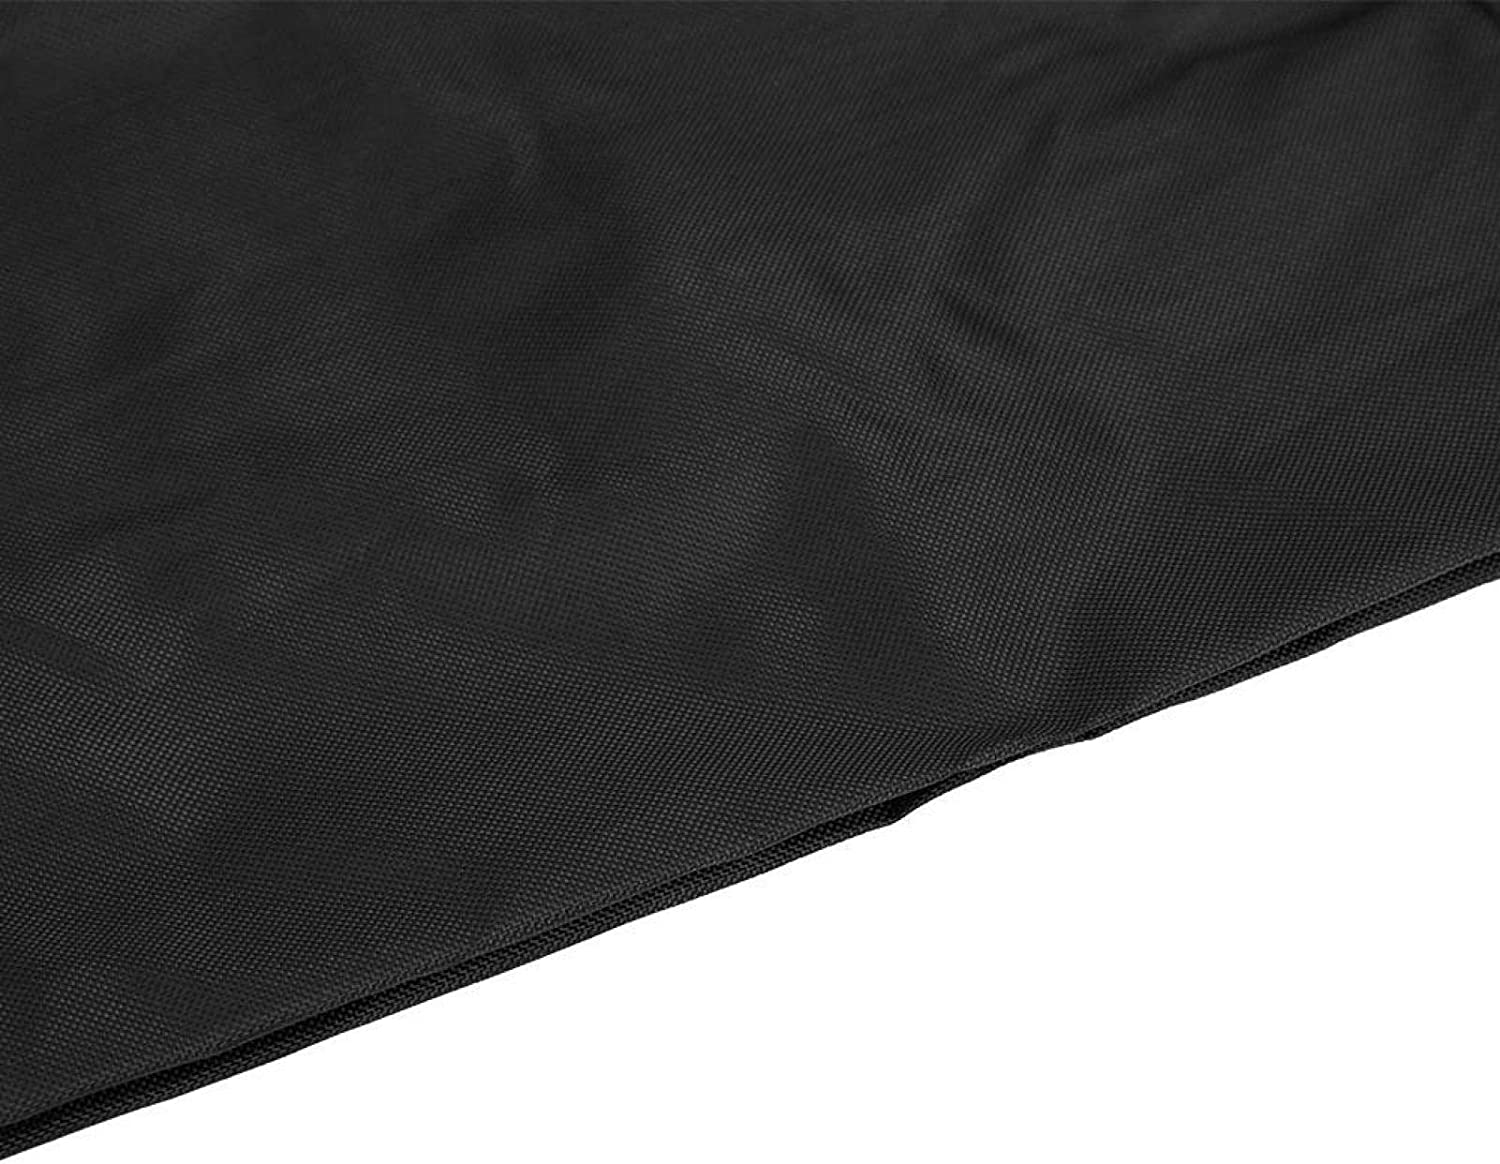 Voluxe Sales of SALE items from new works Umbrella Cover Oxford Cloth Protector U Elegant -